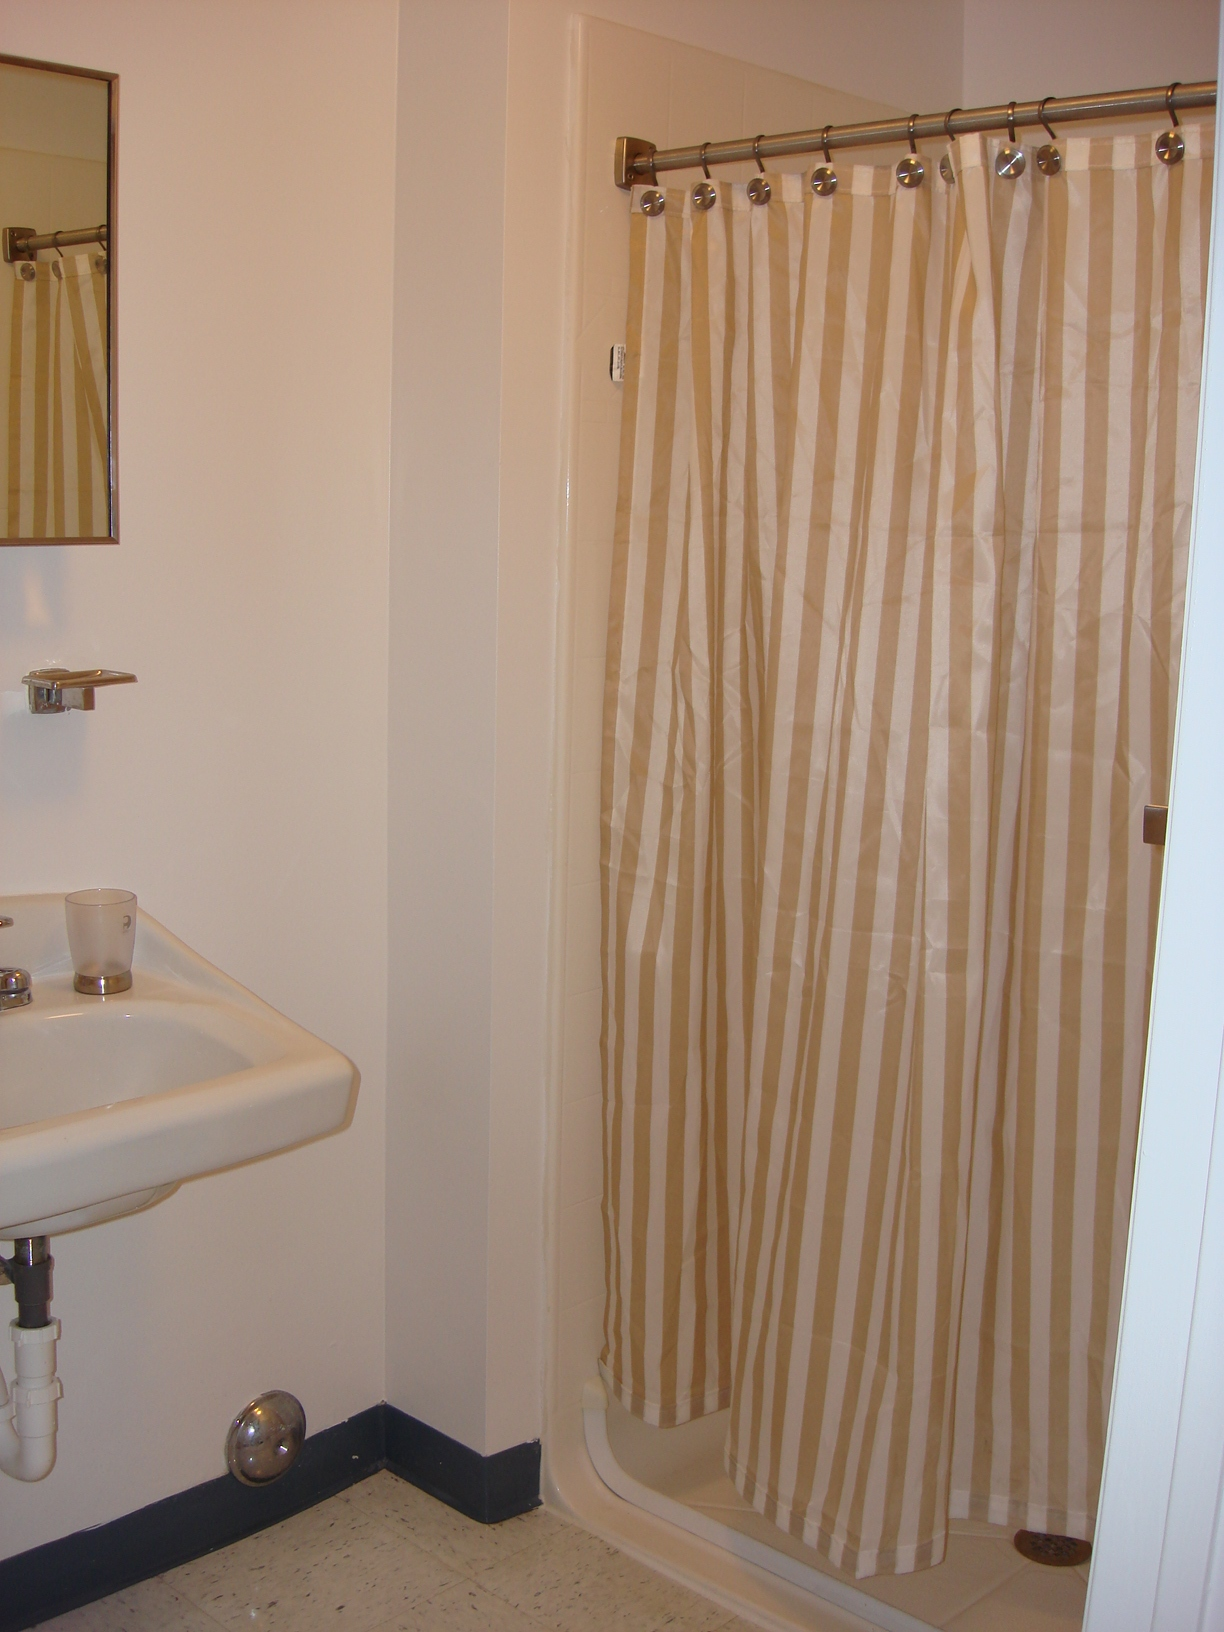 Bathroom - resize